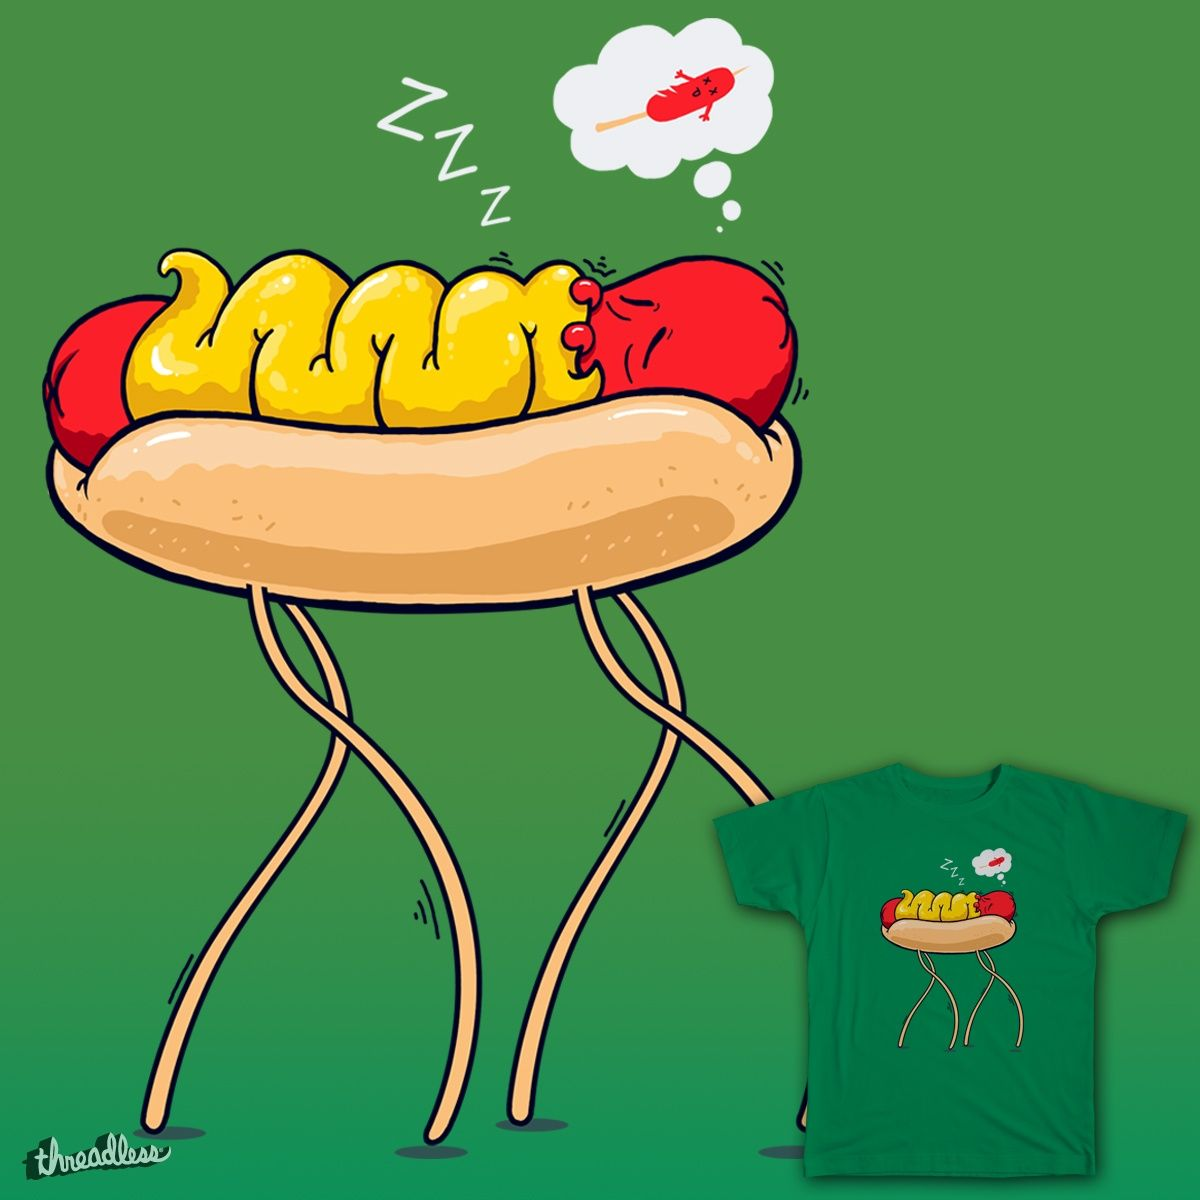 current design submitted for scoring... It is better to be on a bun rather on a stick! hope you like it! vote for my design! @Threadless